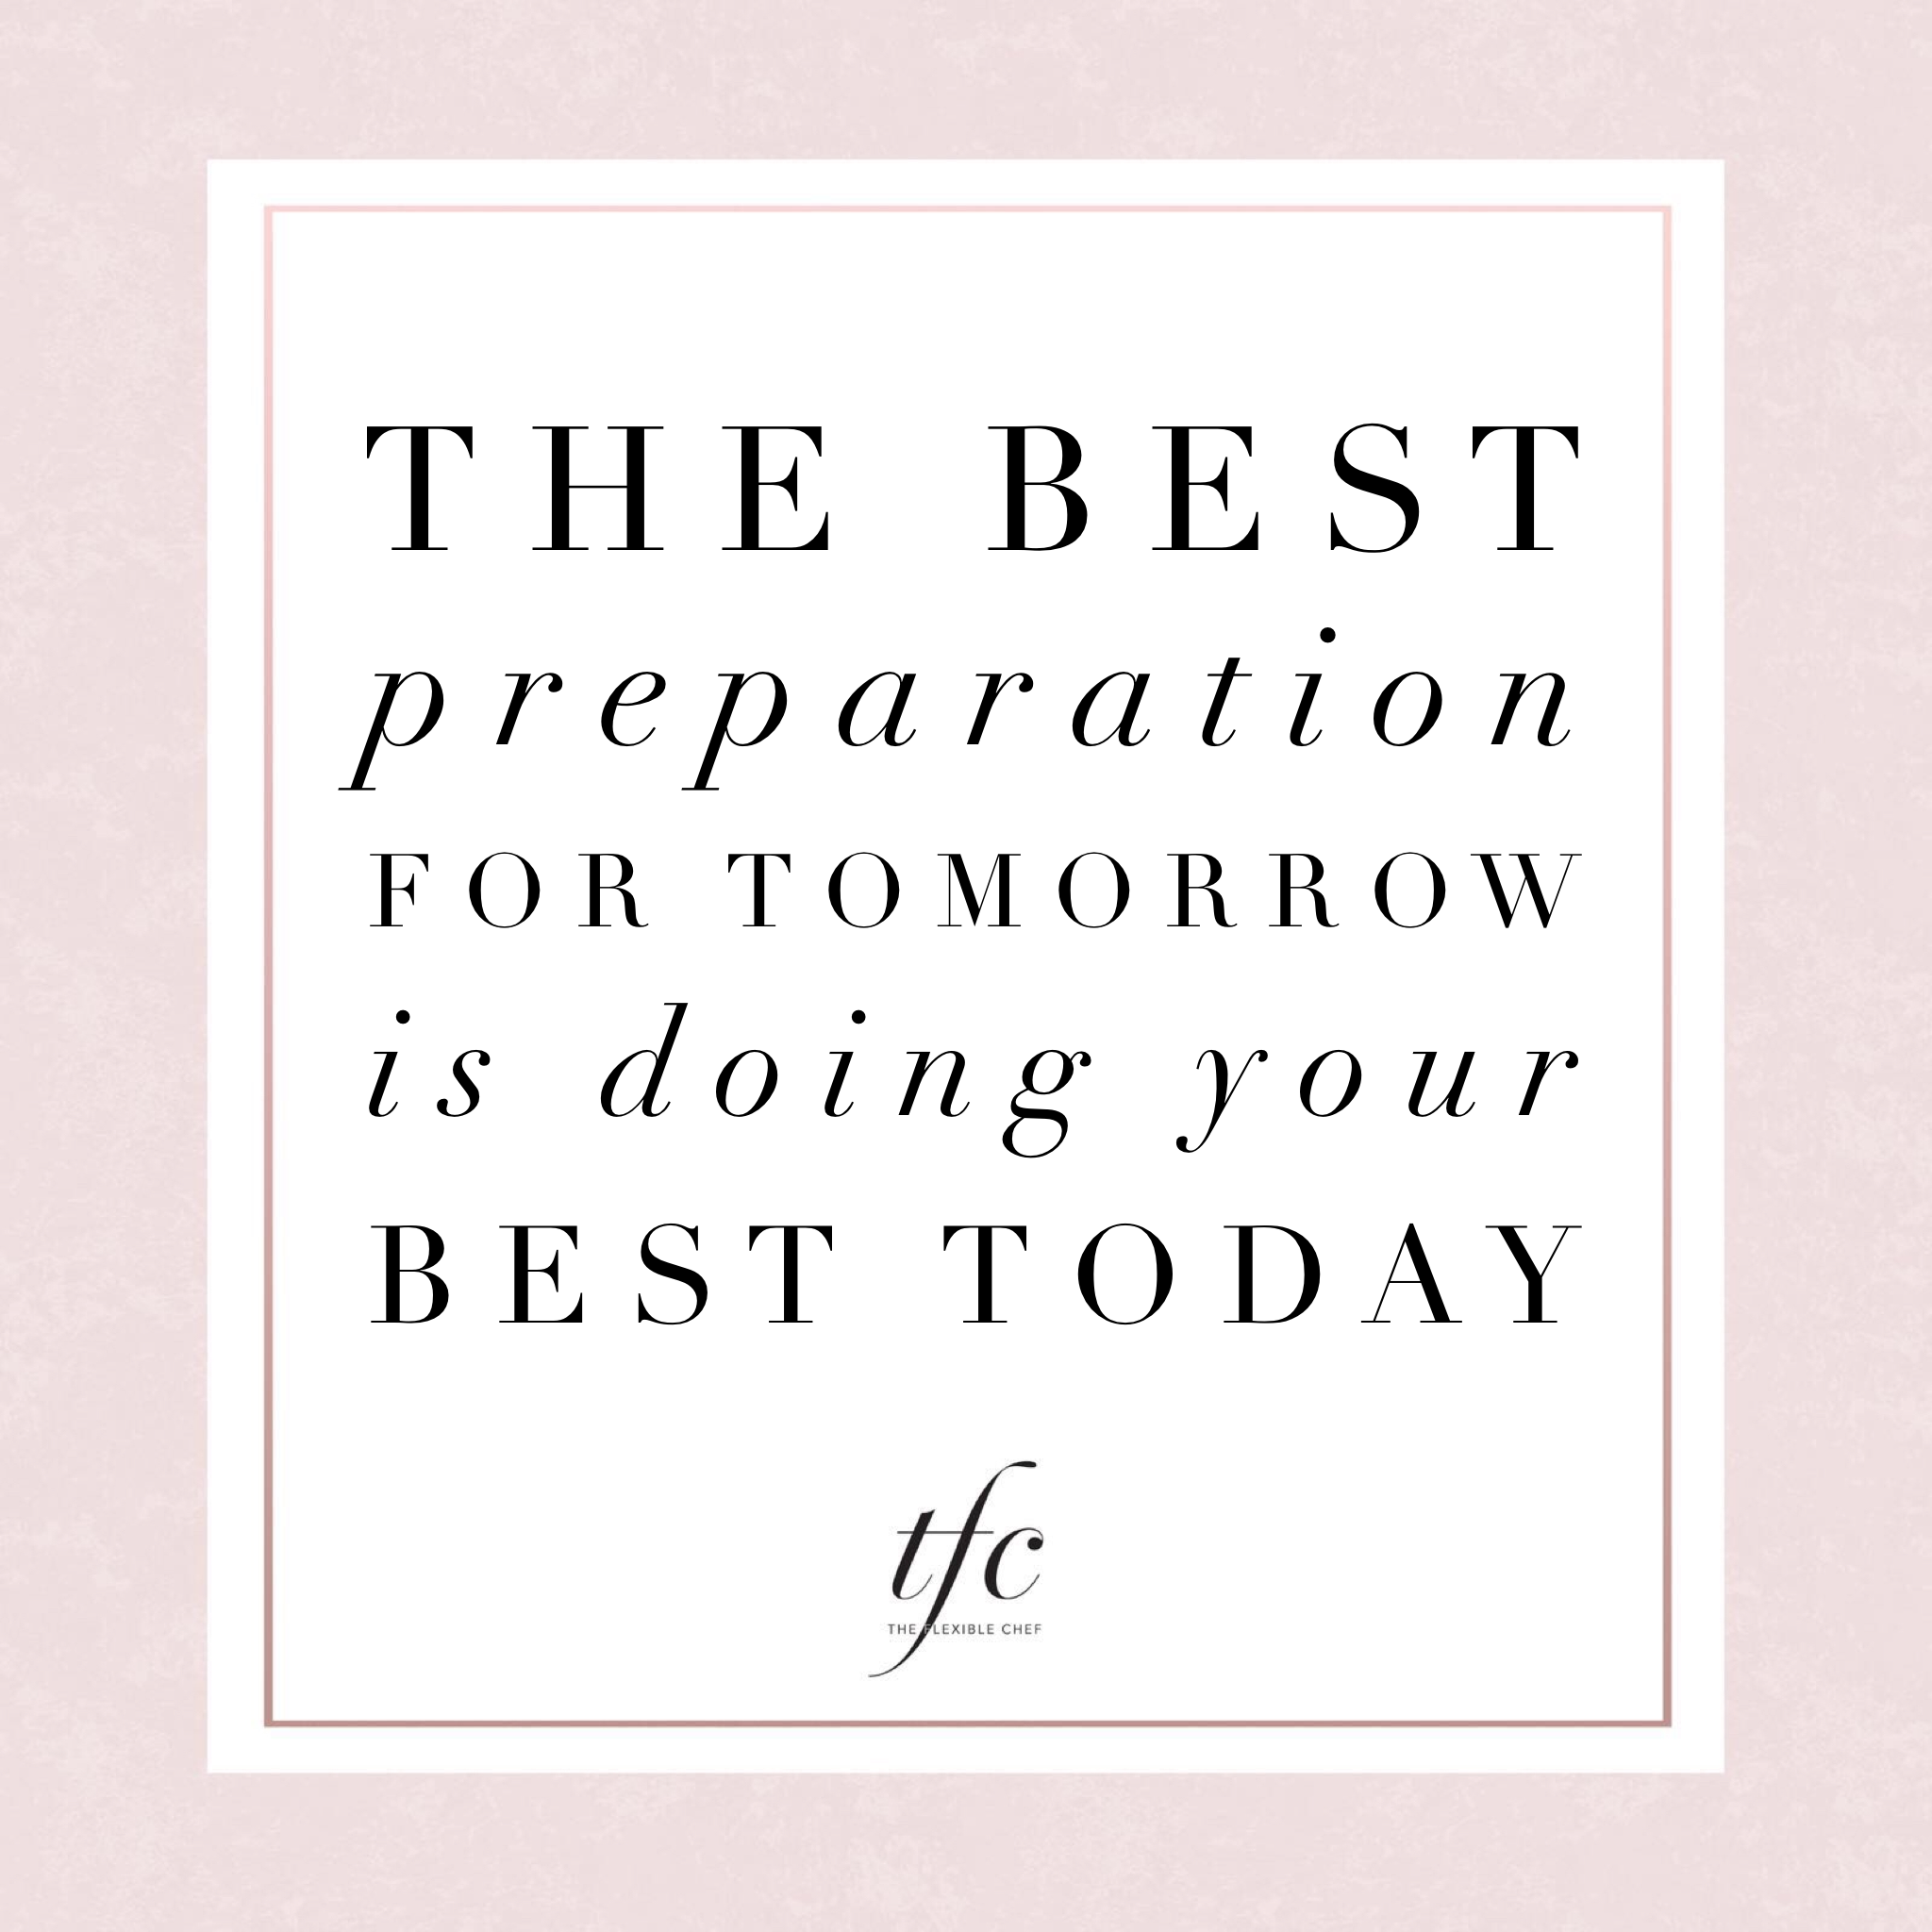 Quotes About Doing Your Best The Best Preparation For Tomorrow Is Doing Your Best Today  Life